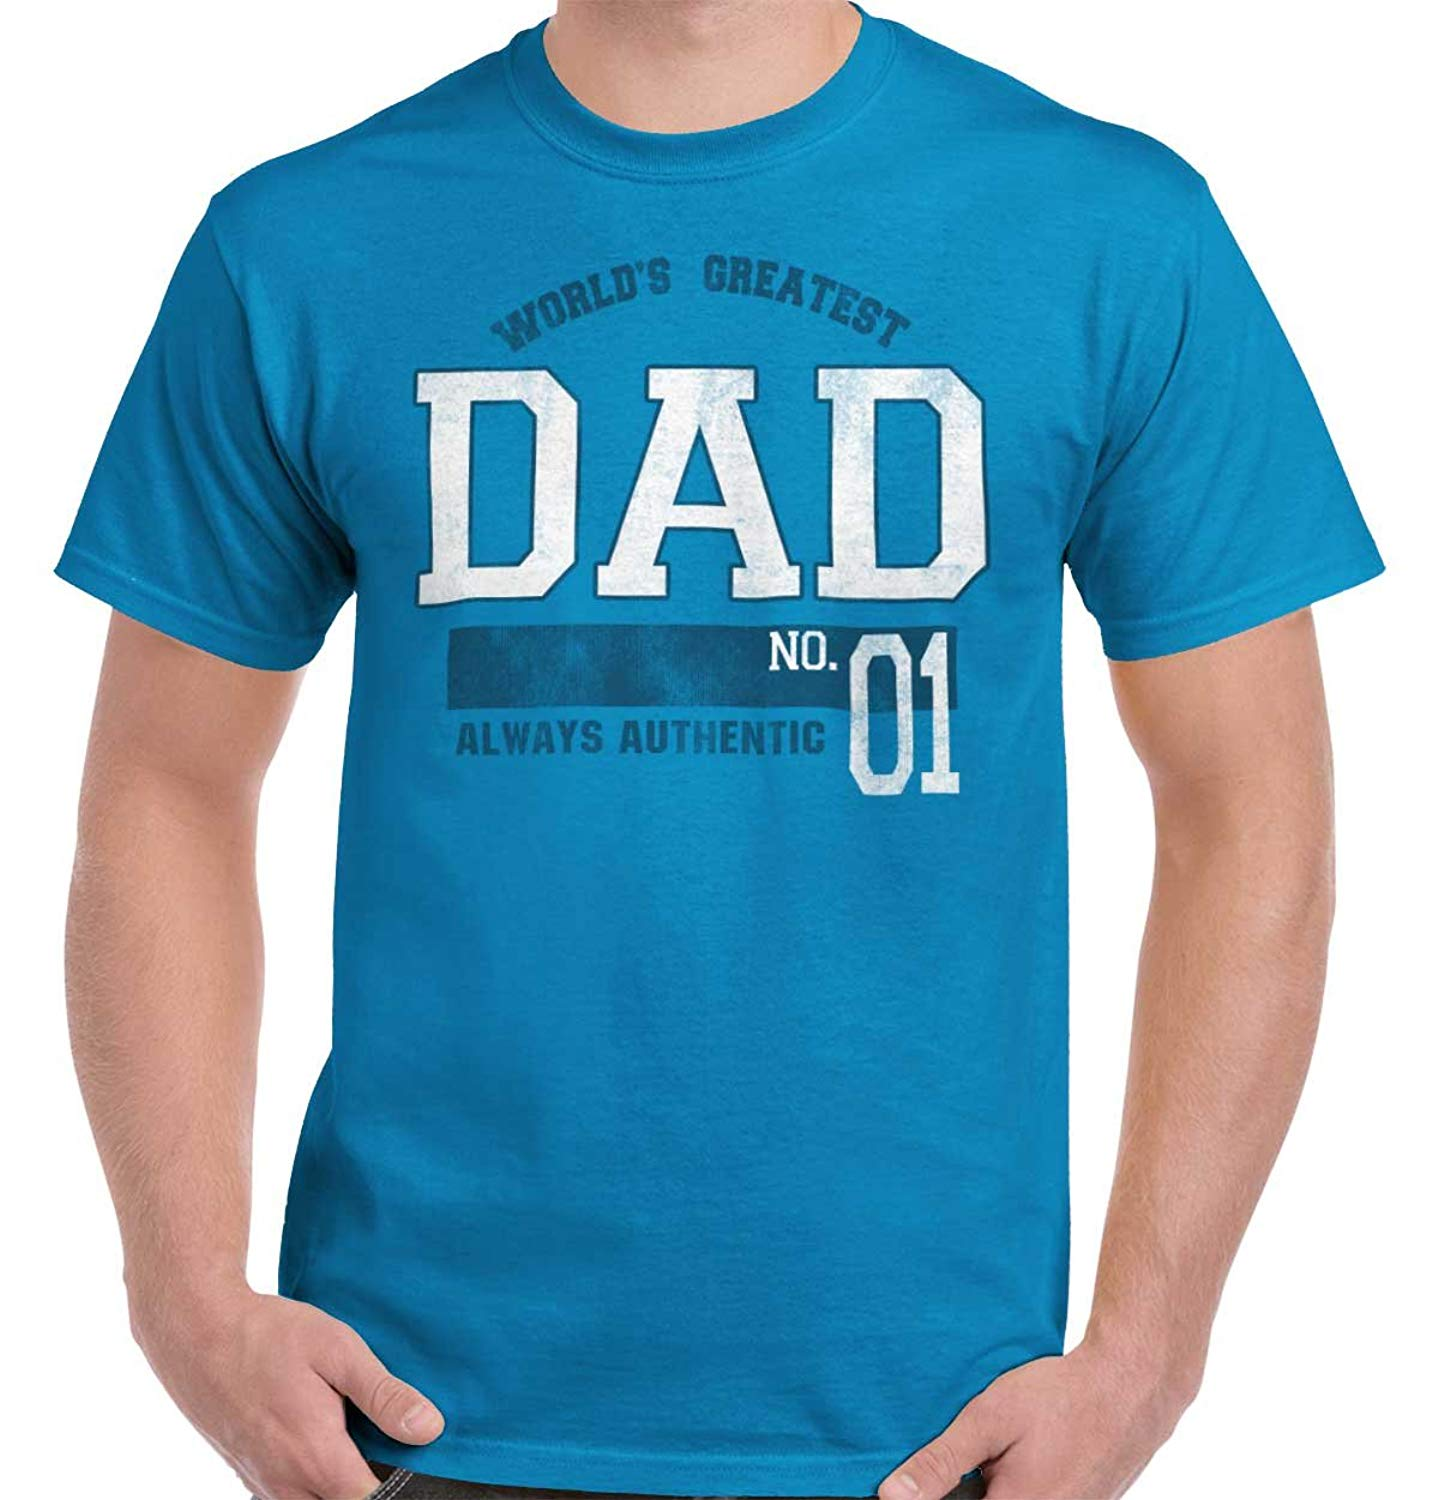 18f416bfa Get Quotations · Brisco Brands World Greatest Dad #1 Father Day Gifts Funny  Cool Graphic T Shirt